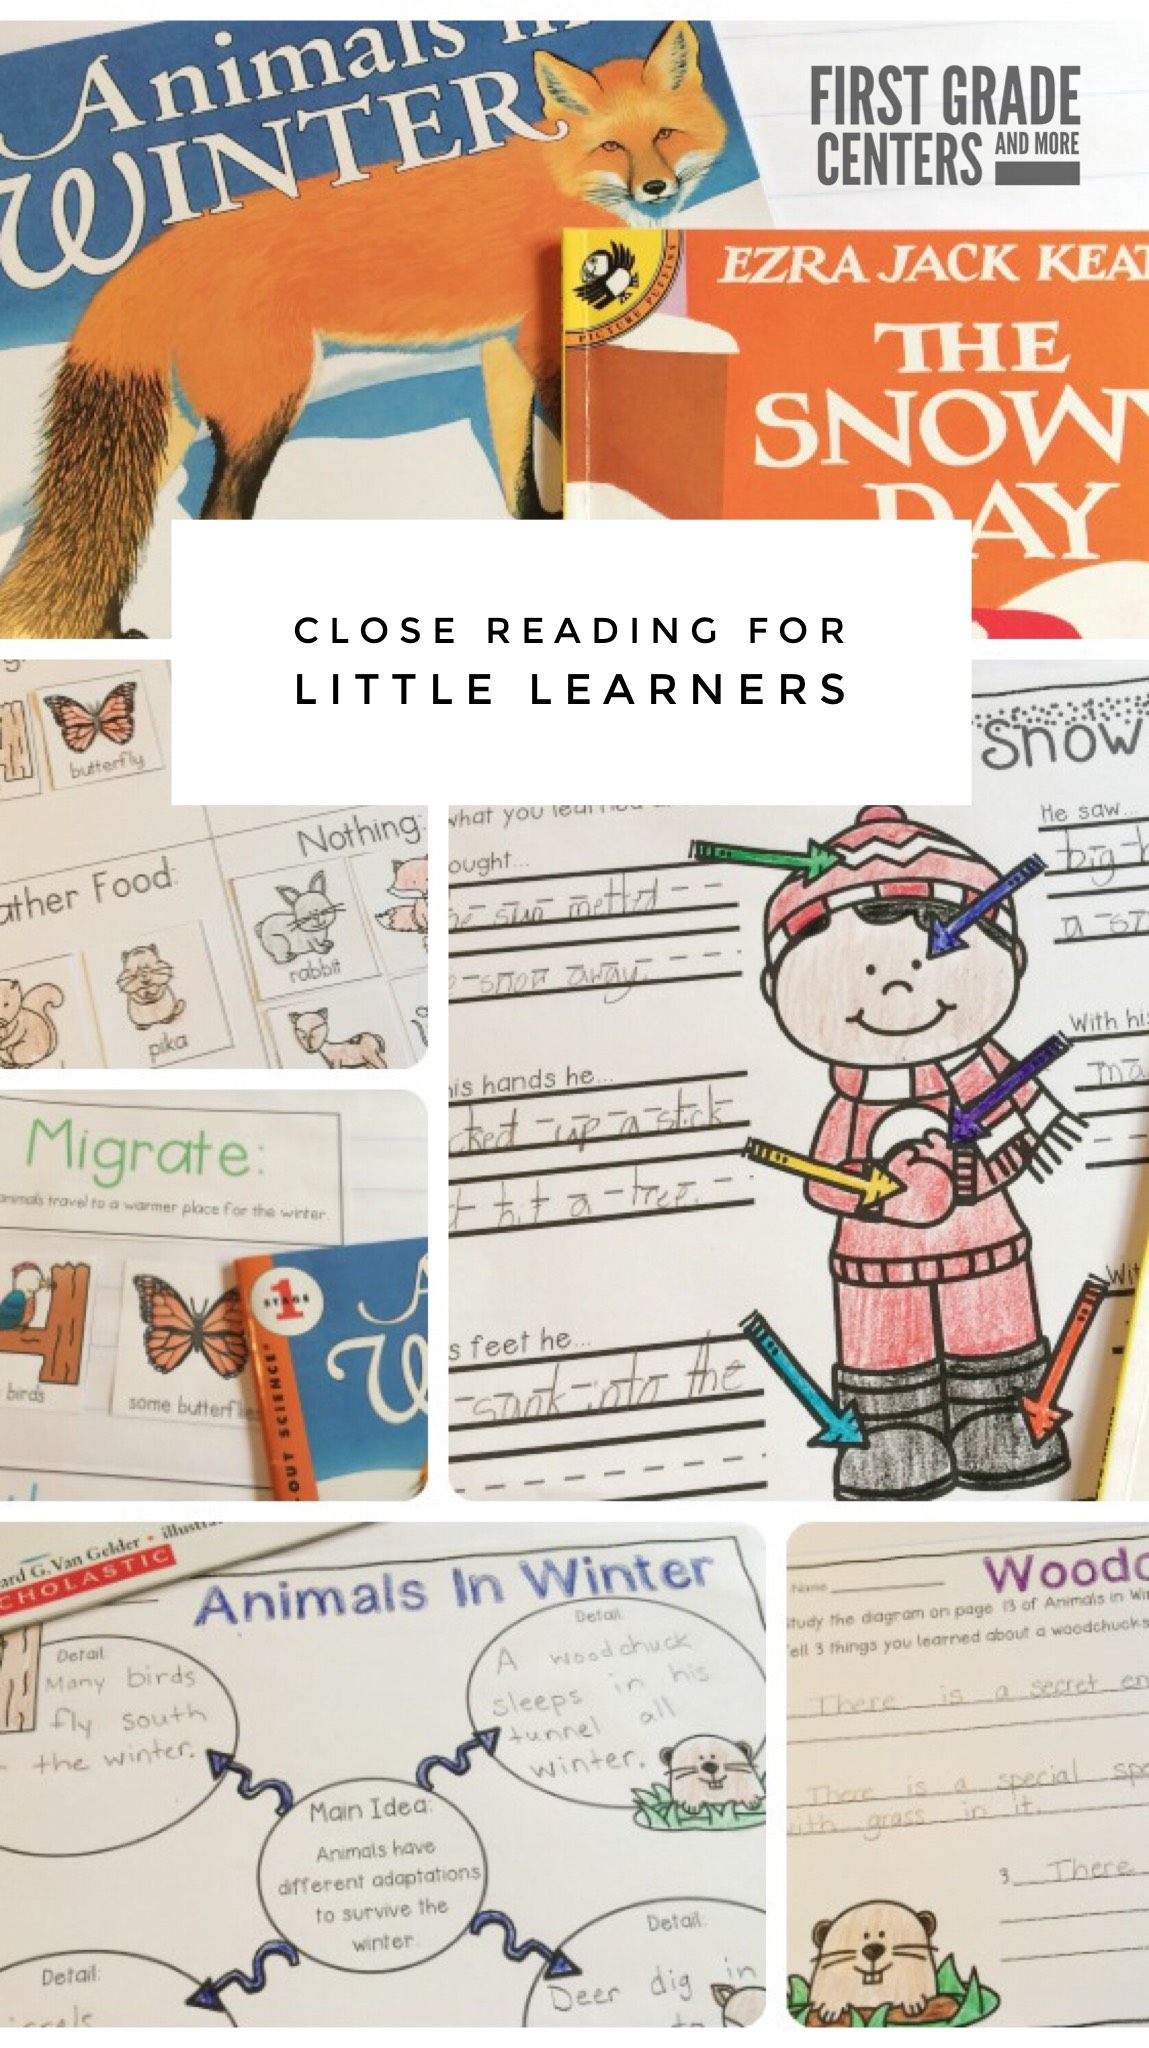 The Snowy Day And Animals In Winter Book Activities